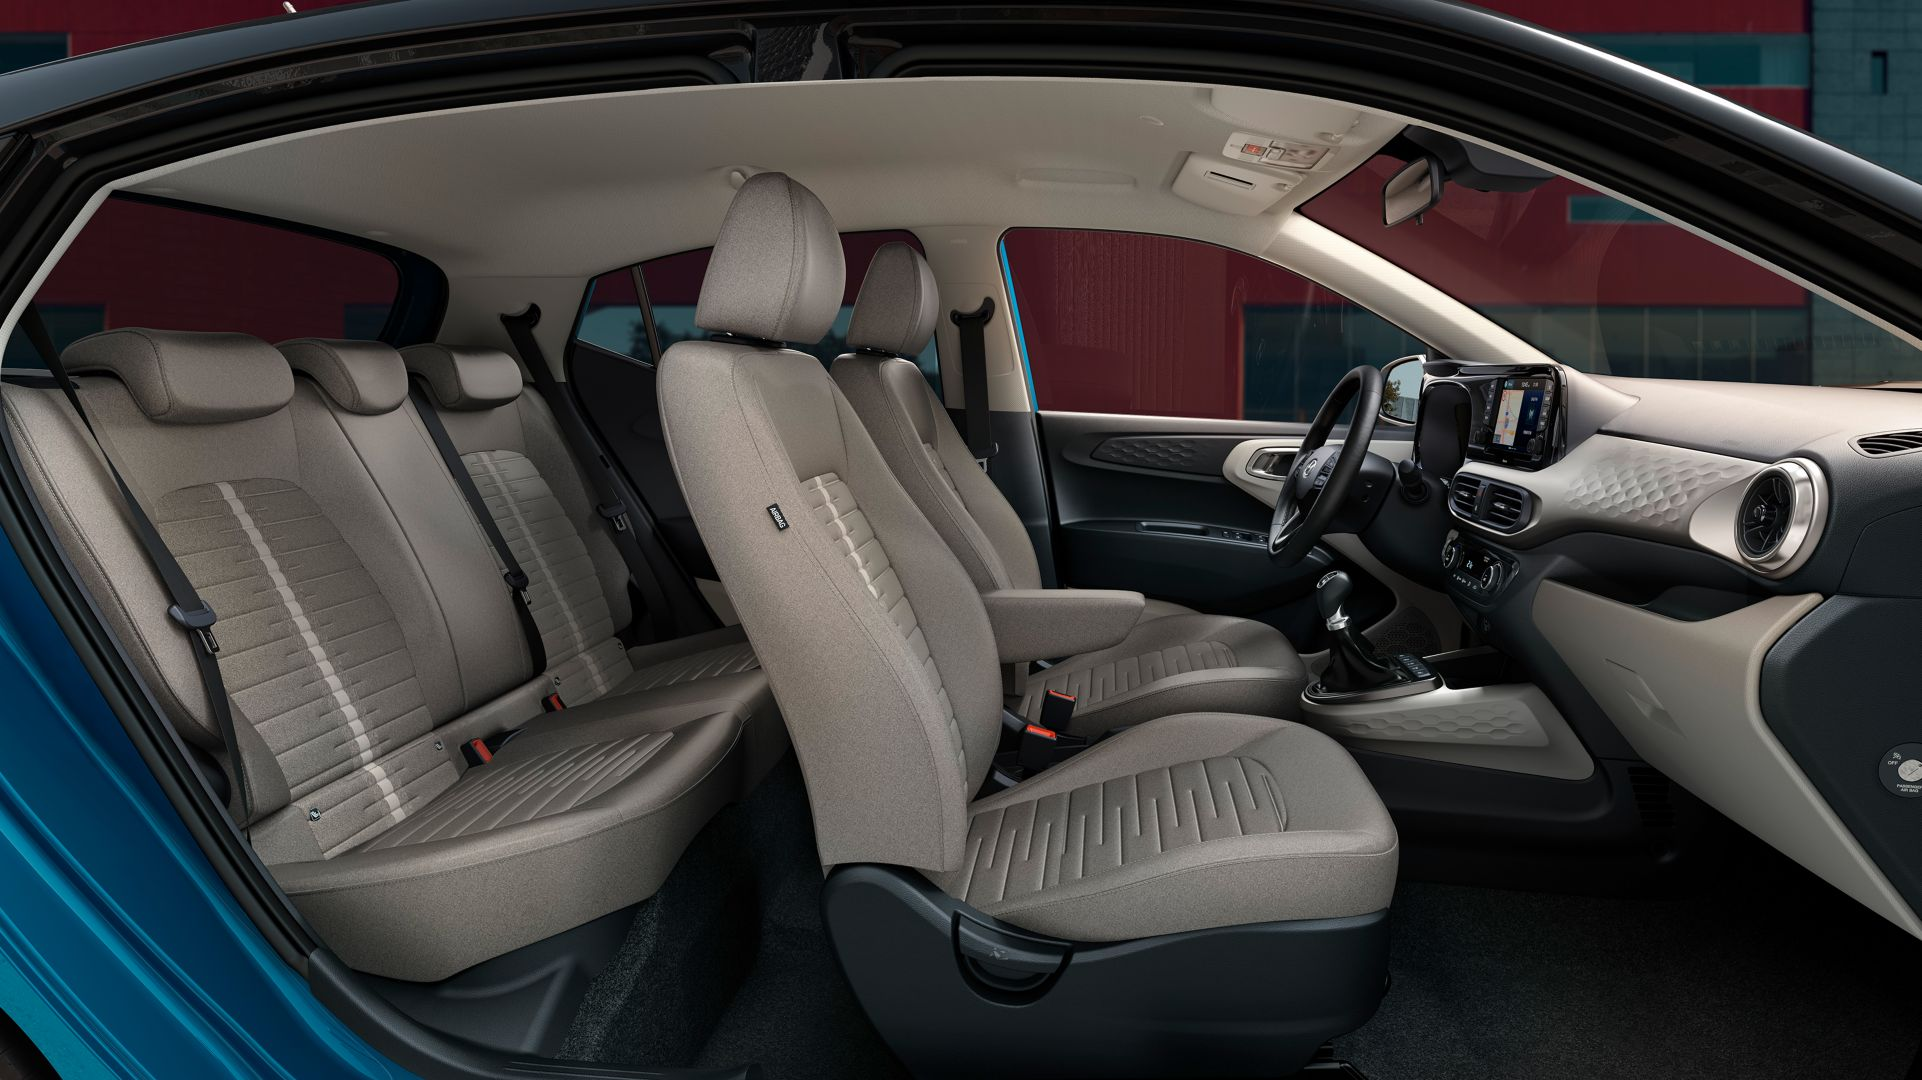 Image of the seats of the all-new Hyundai i10.